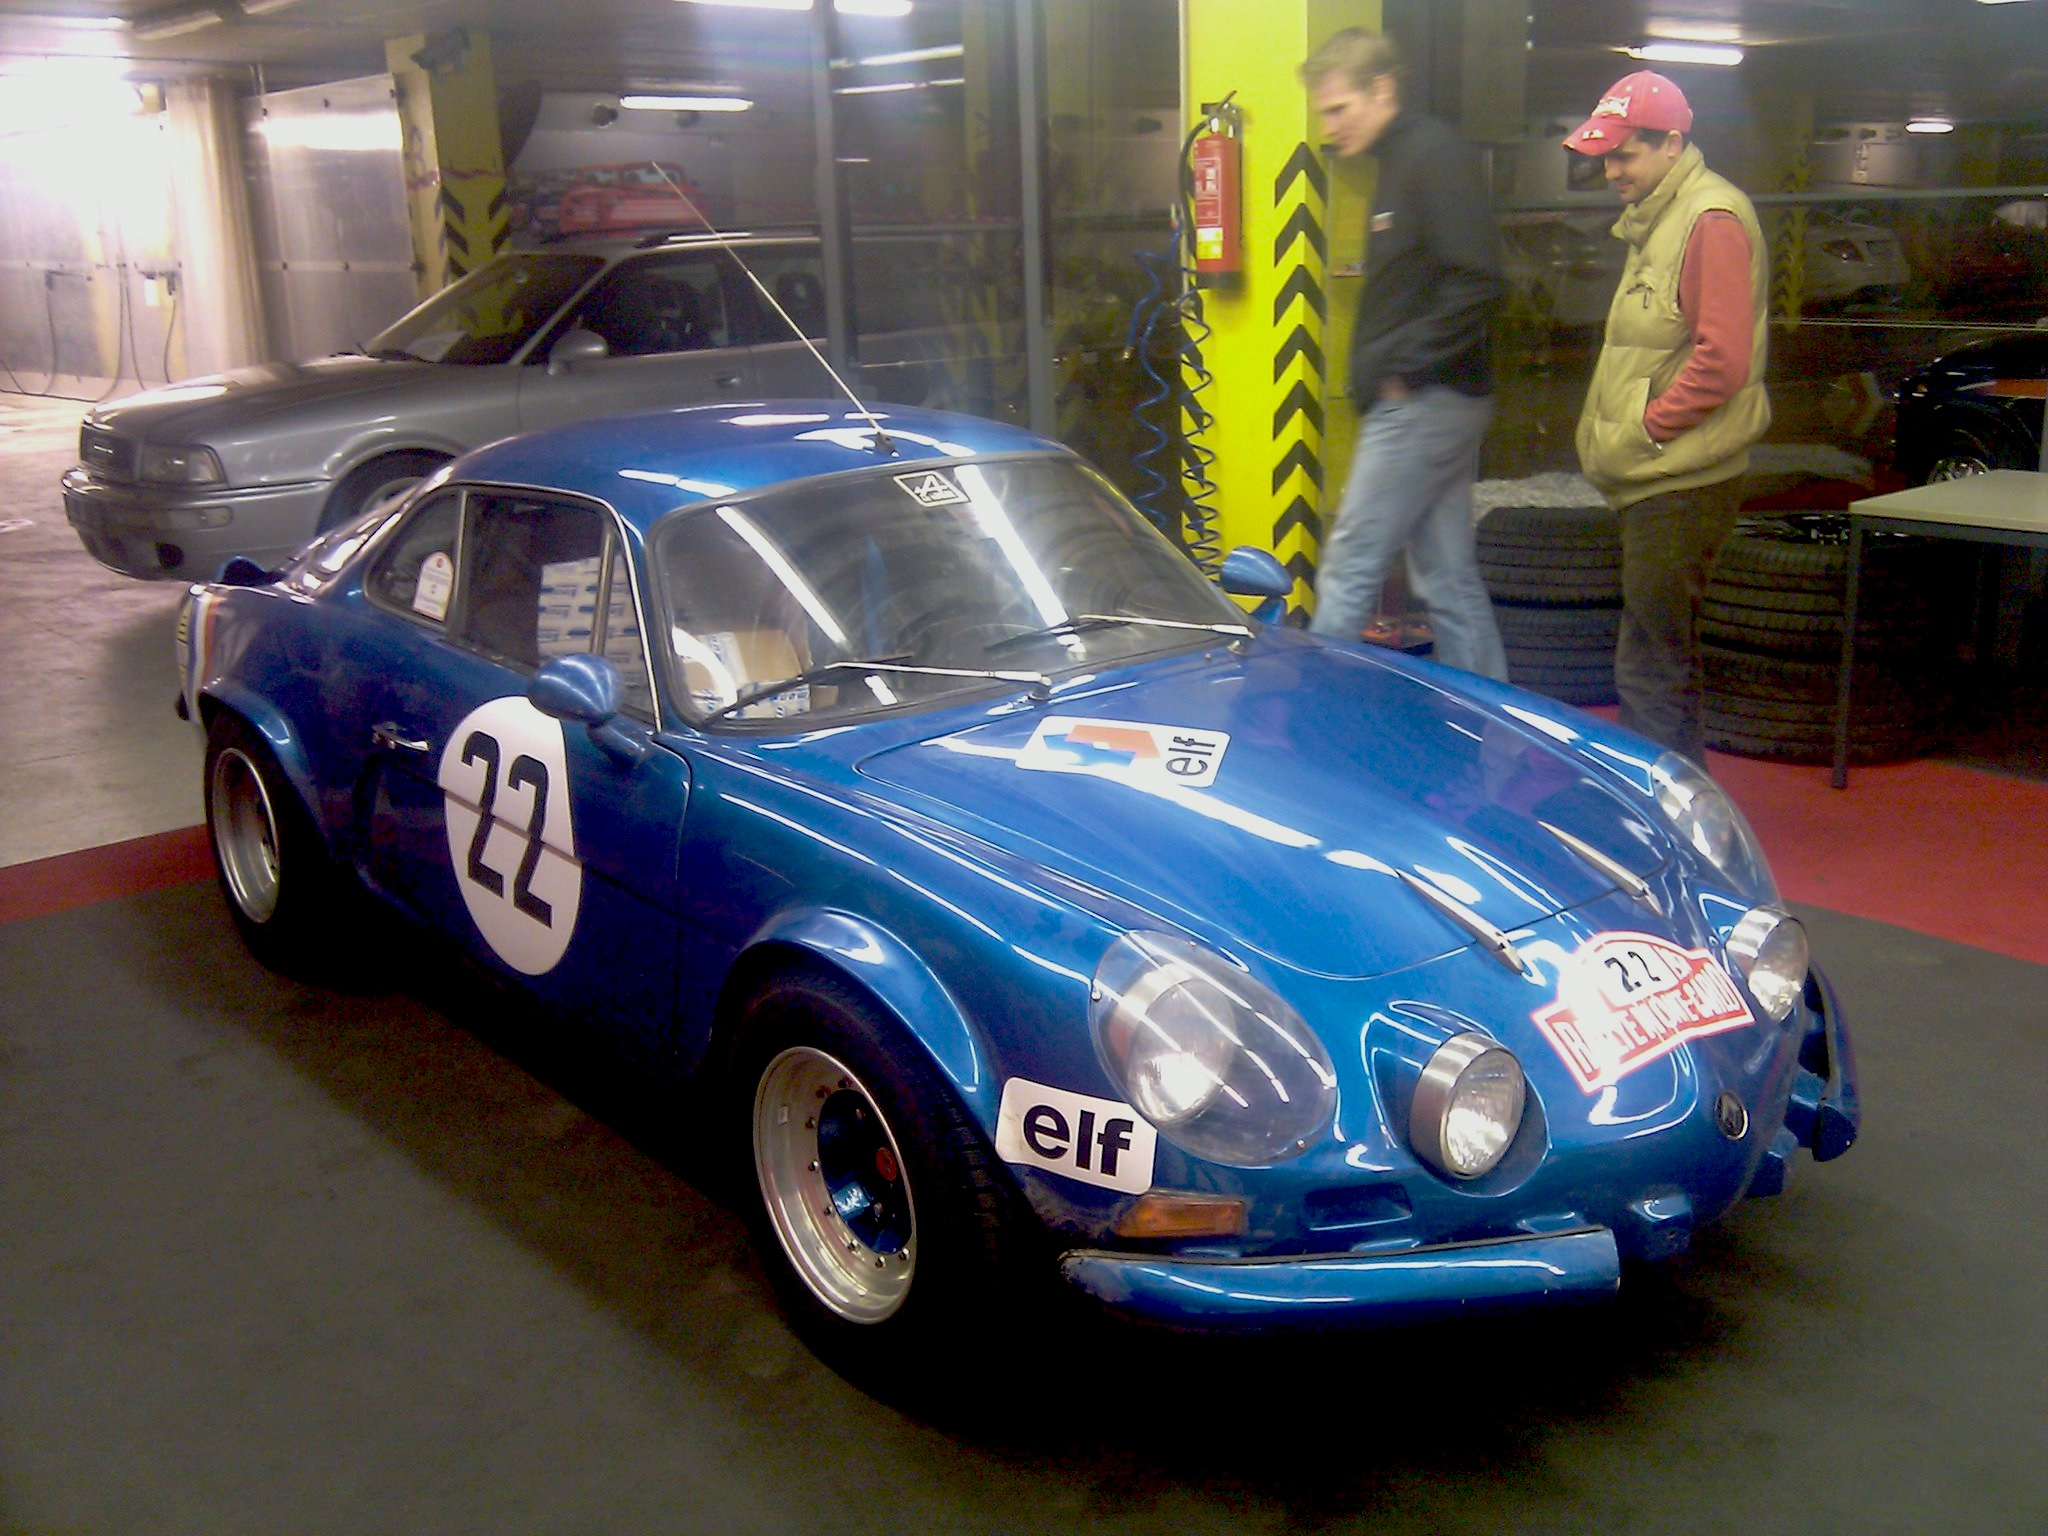 perfection (Alpine A110)